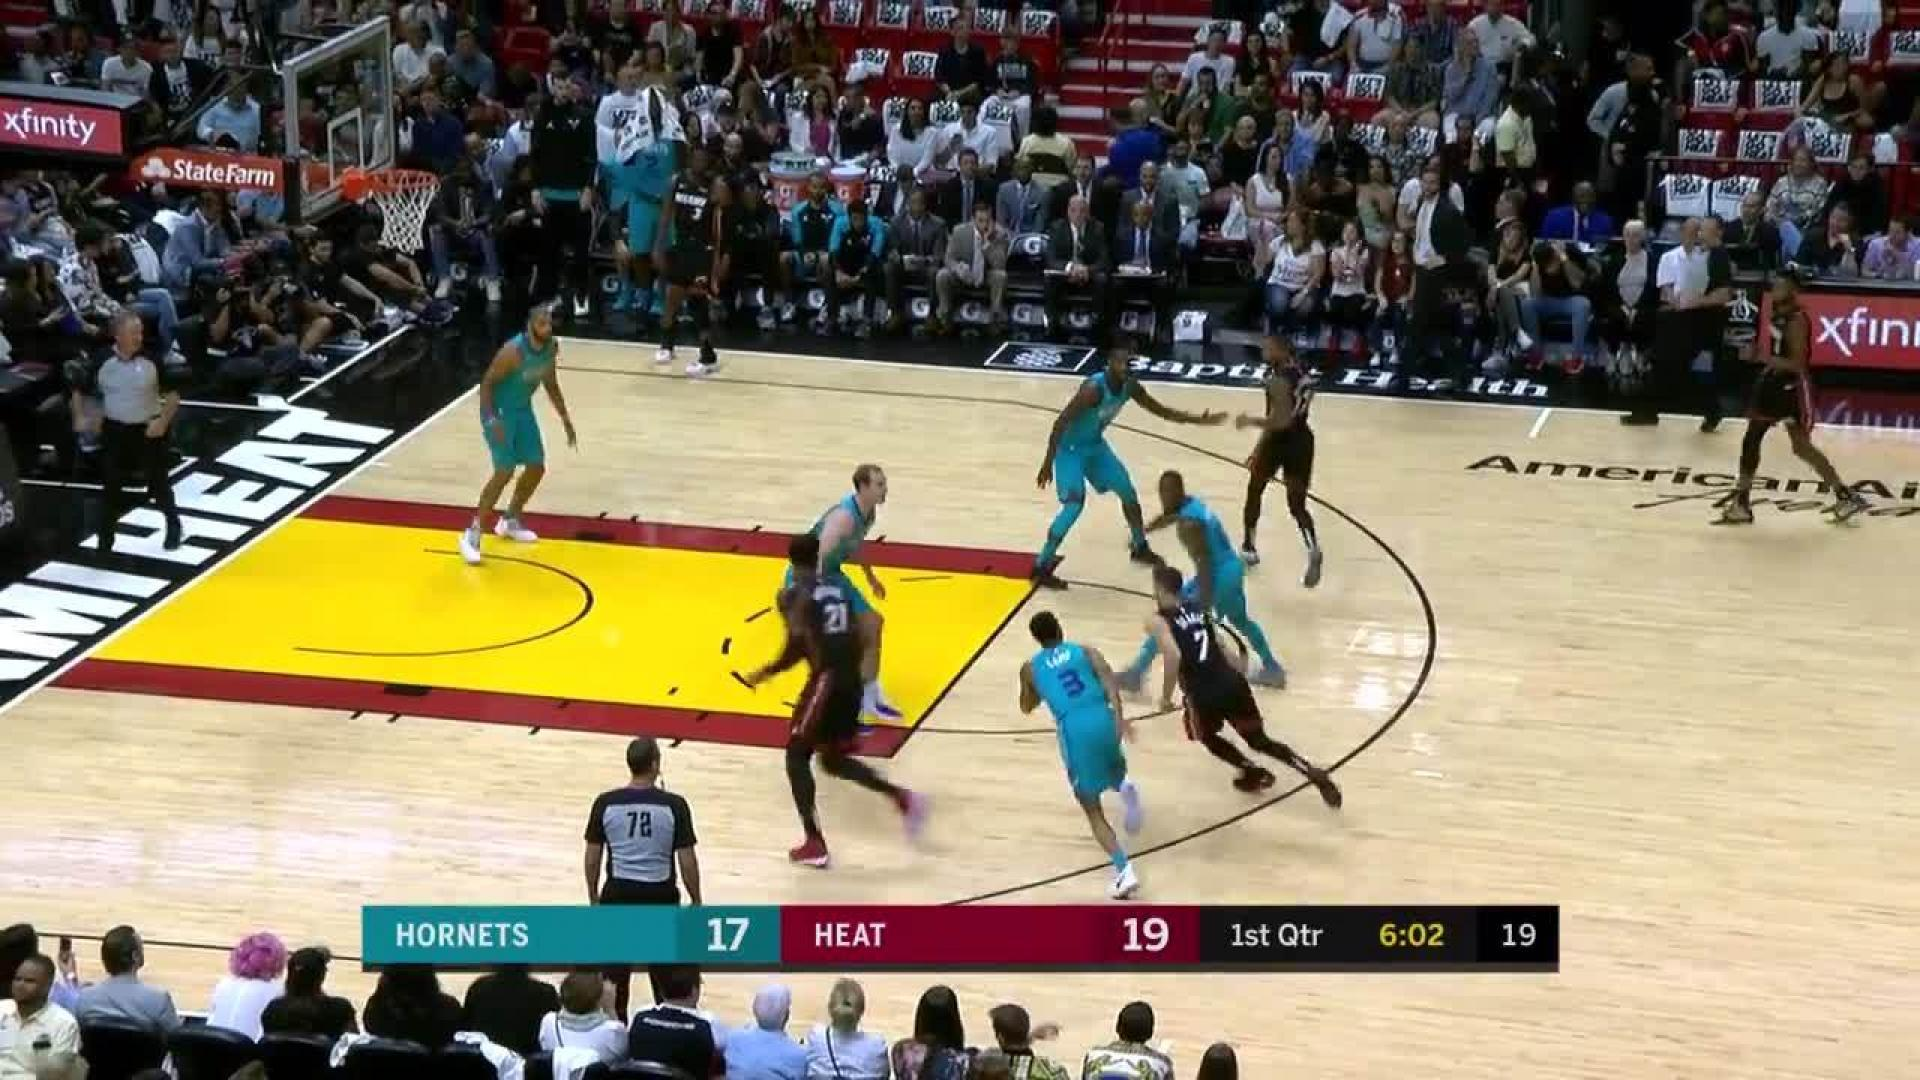 68a76b9d6b483 Dunk HQ  Countdown of the best slams of 2018-19